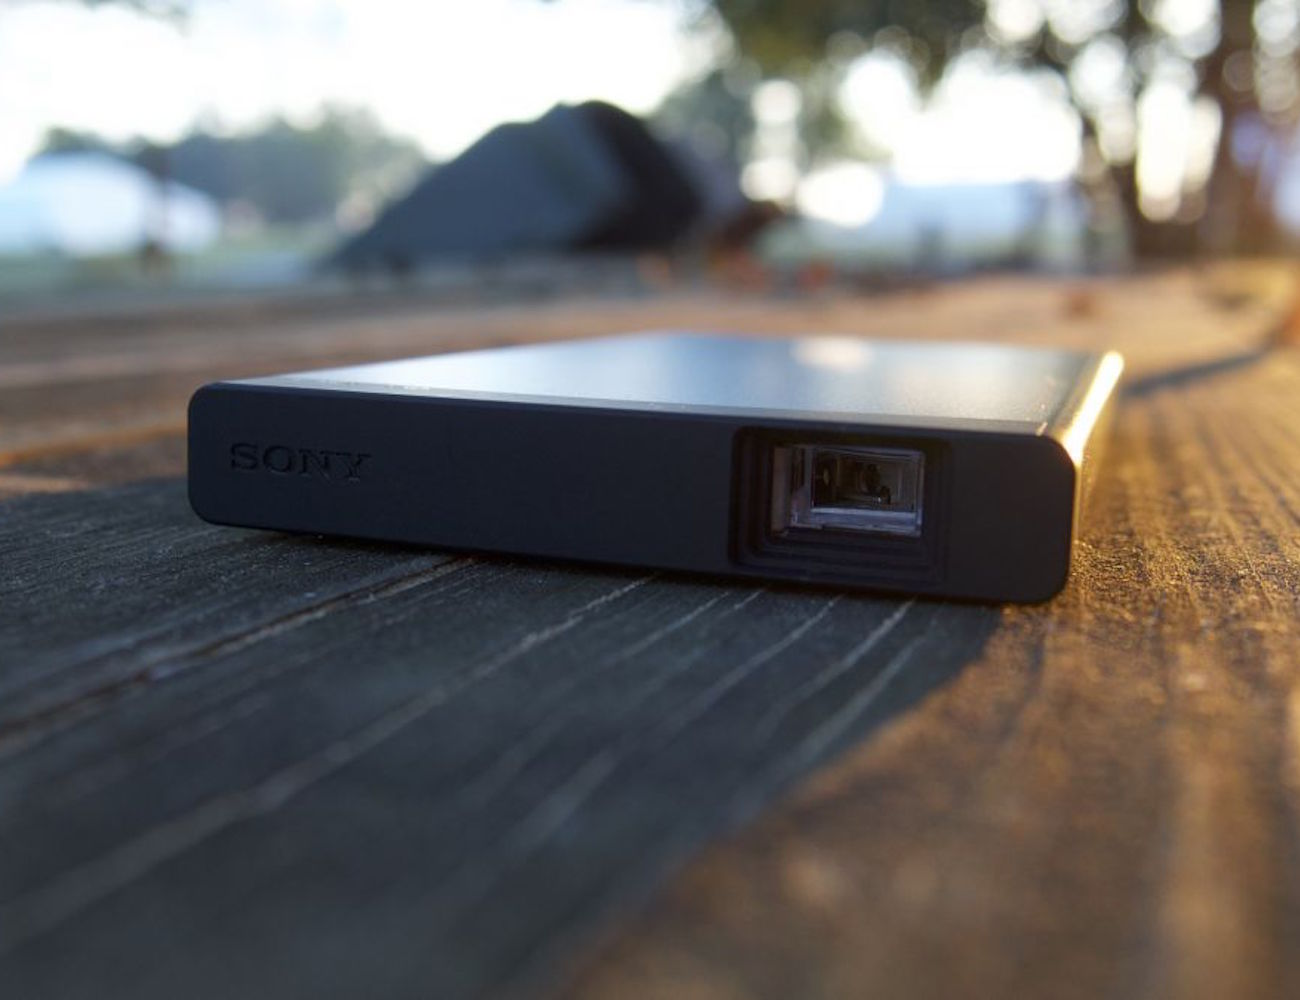 Sony hd pico mobile projector review the gadget flow for Hd mobile projector